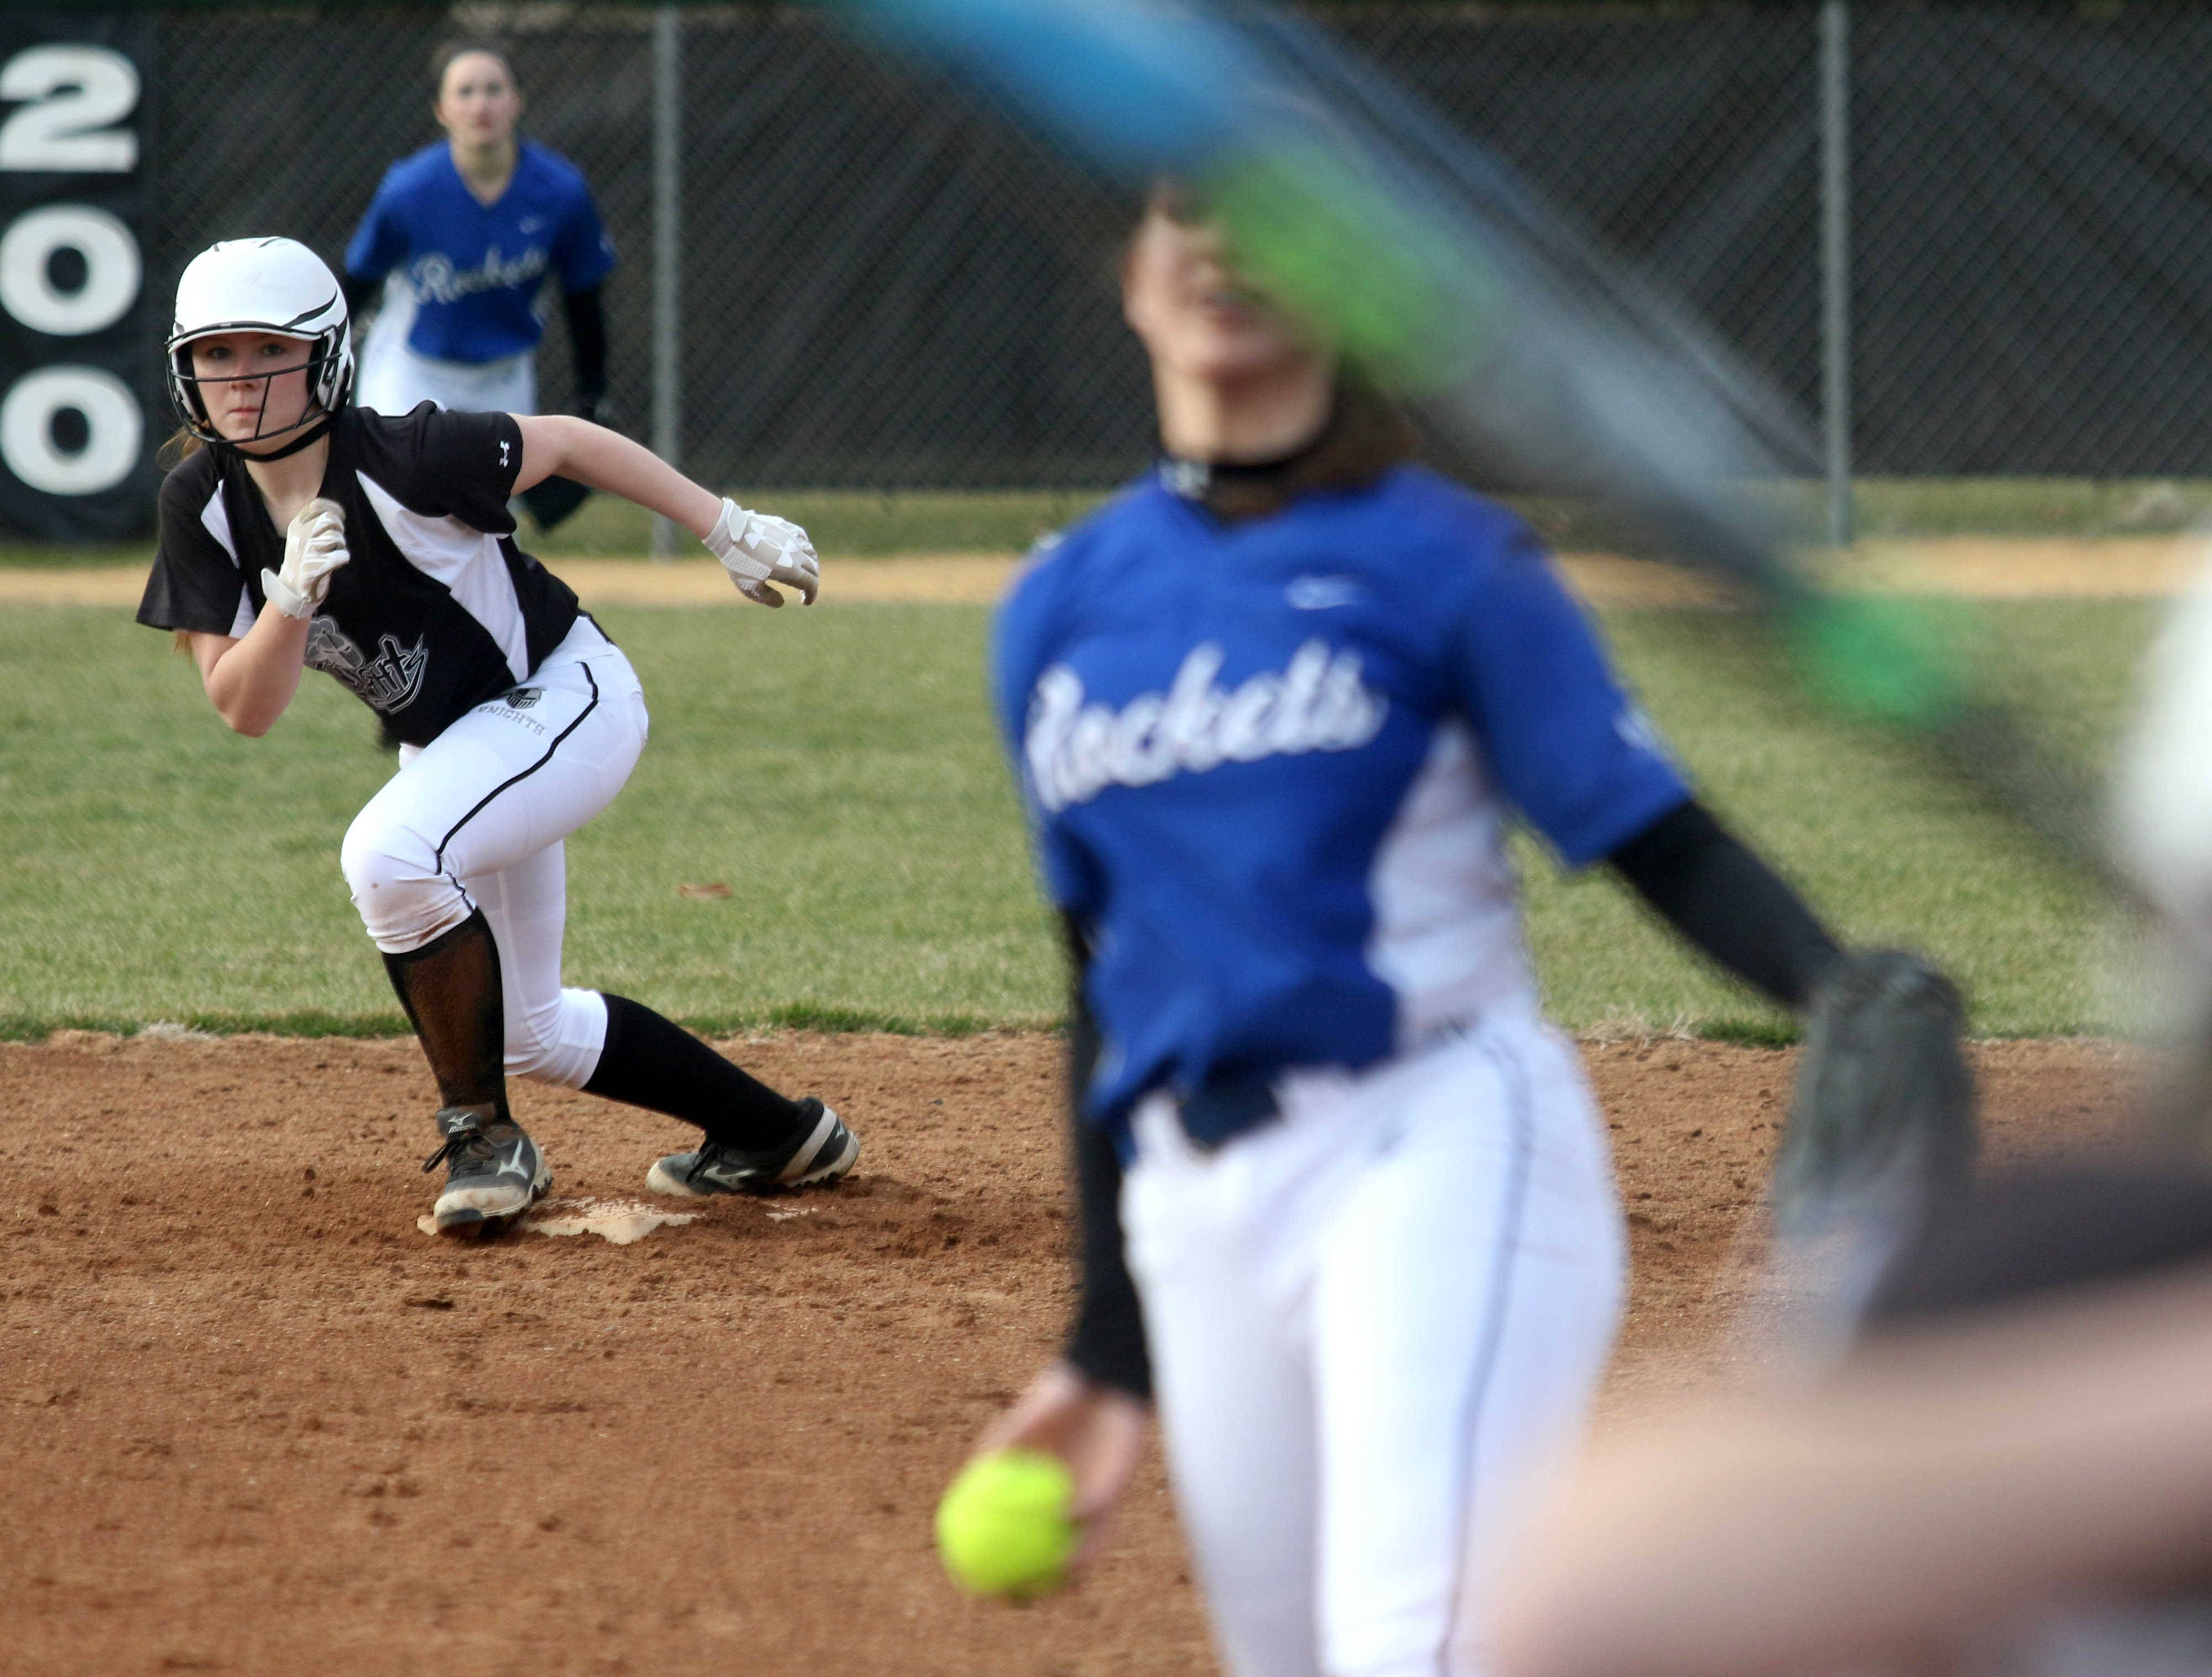 Kaneland's Maddy Wheatley gets a jump at second base as Burlington Central pitcher Julia Barnes delivers to home during varsity softball action at Kaneland Monday night.